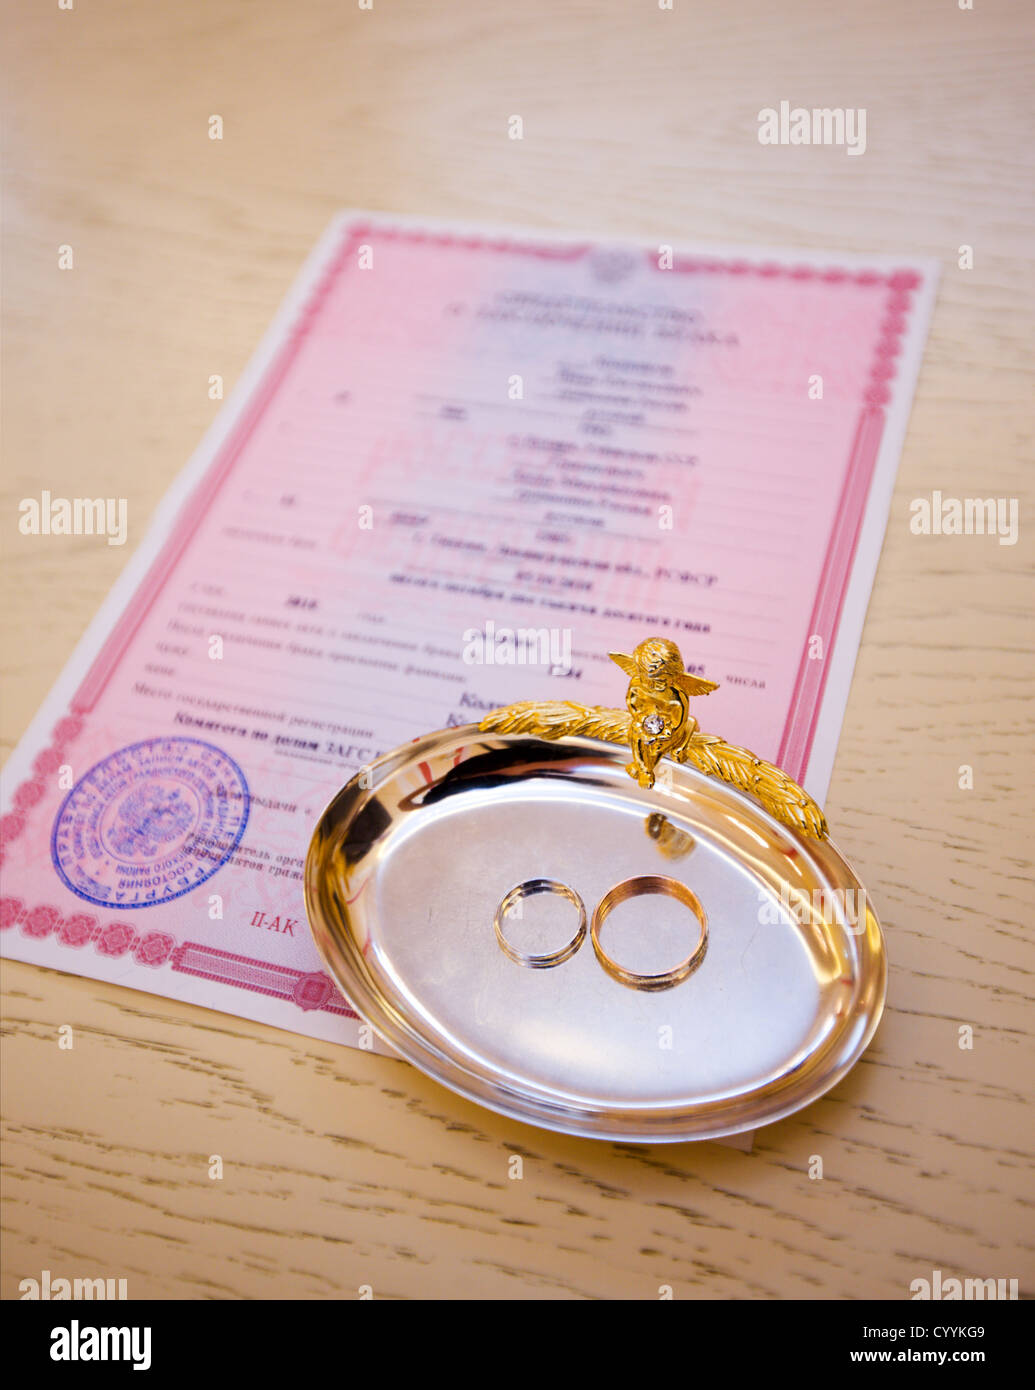 Golden Wedding Rings Reflection Stock Photos & Golden Wedding Rings ...